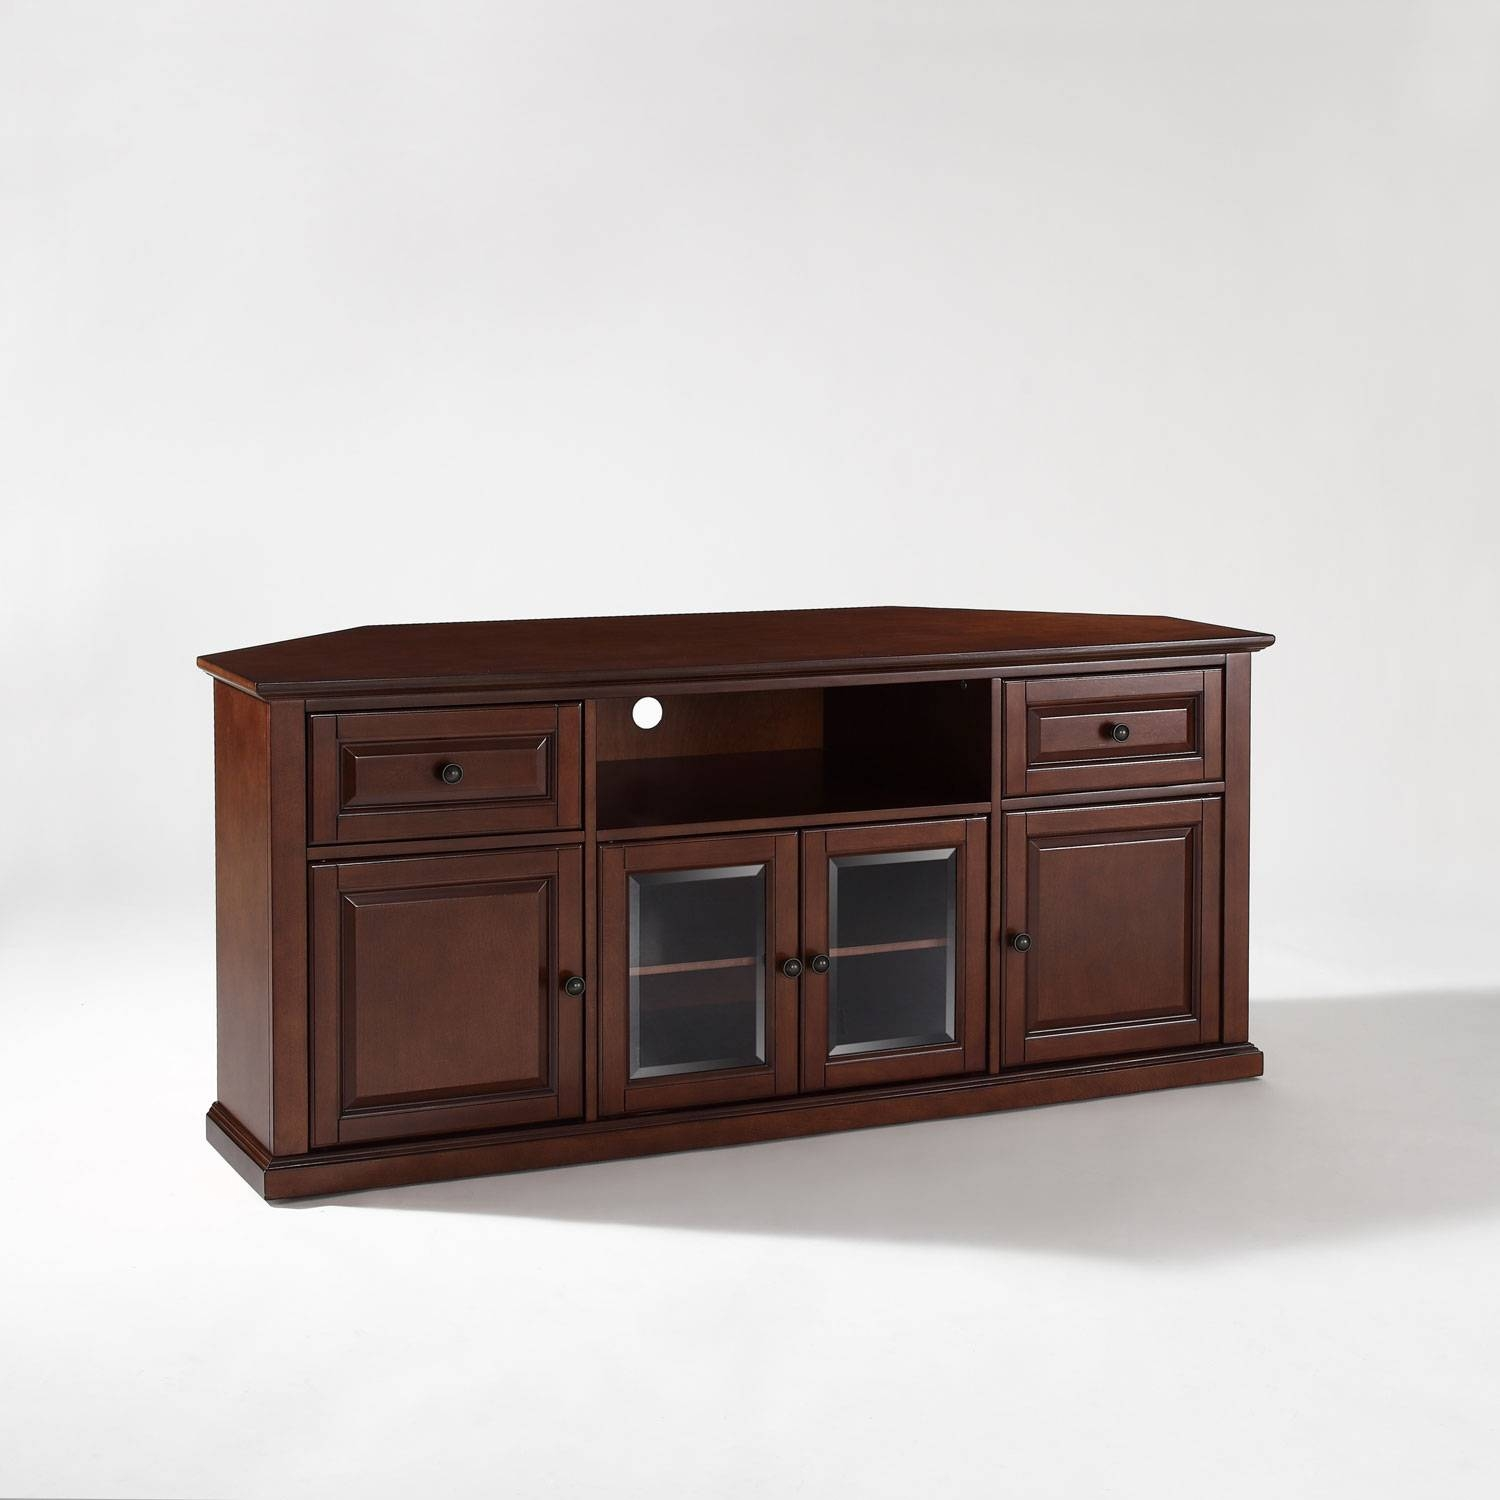 Tv Stands & Cabinets On Sale | Bellacor with Long Tv Stands Furniture (Image 12 of 15)